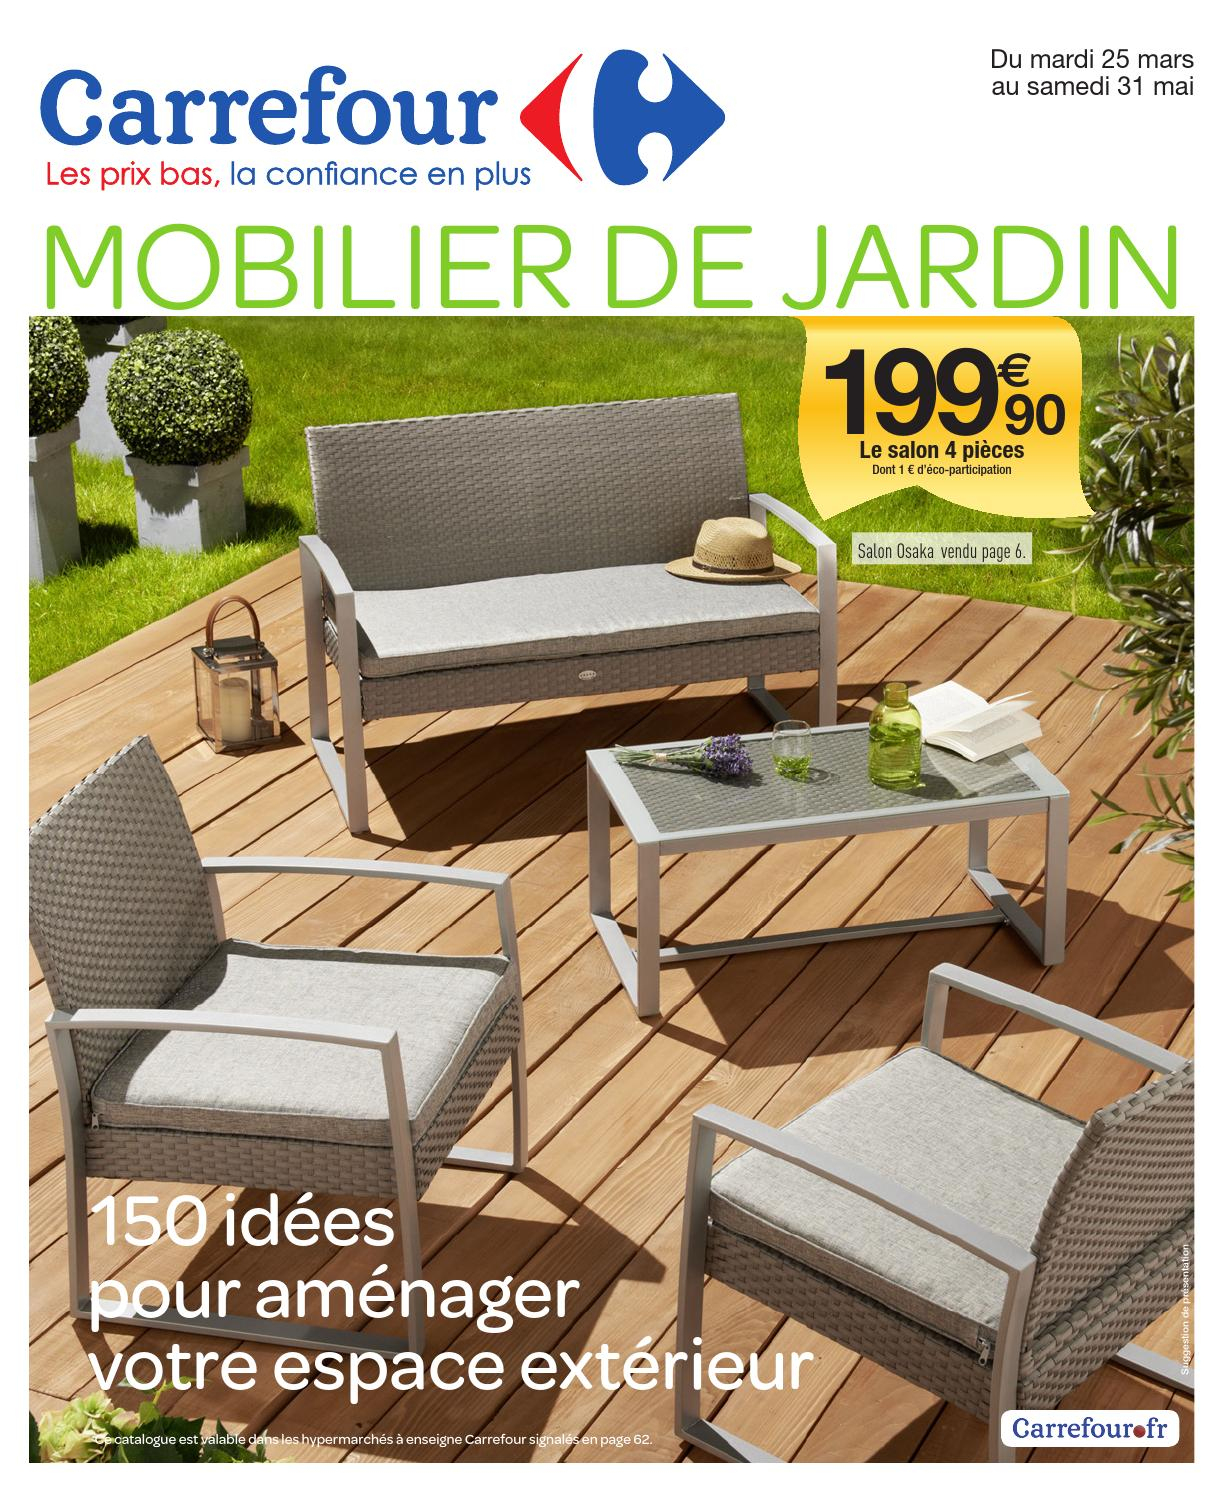 Catalogue Carrefour - 25.03-31.05.2014 By Joe Monroe - Issuu avec Salon De Jardin Chez Leclerc